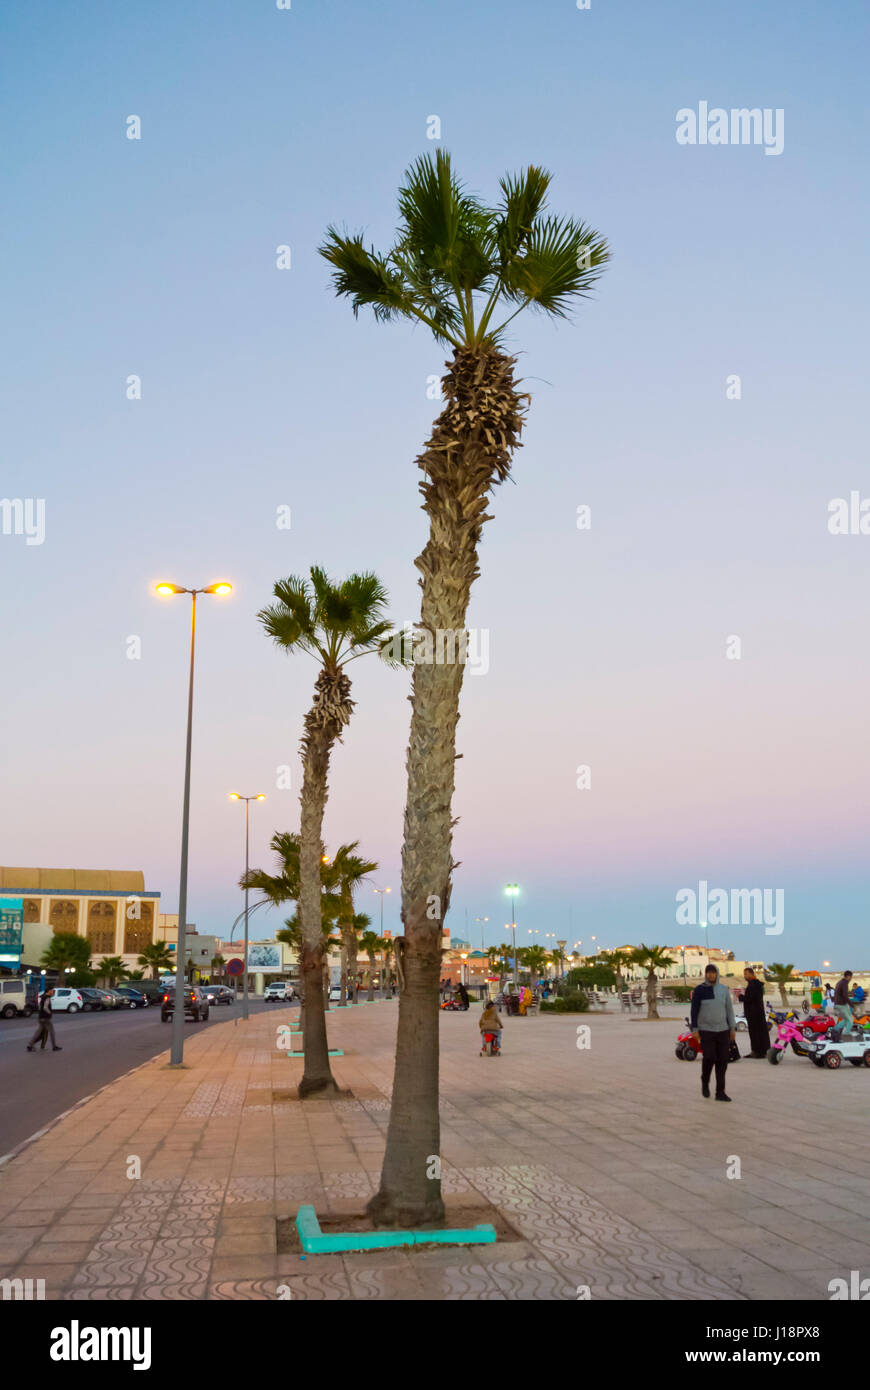 Seaside promenade, Dakhla, Western Sahara, administered by Morocco, Africa Stock Photo